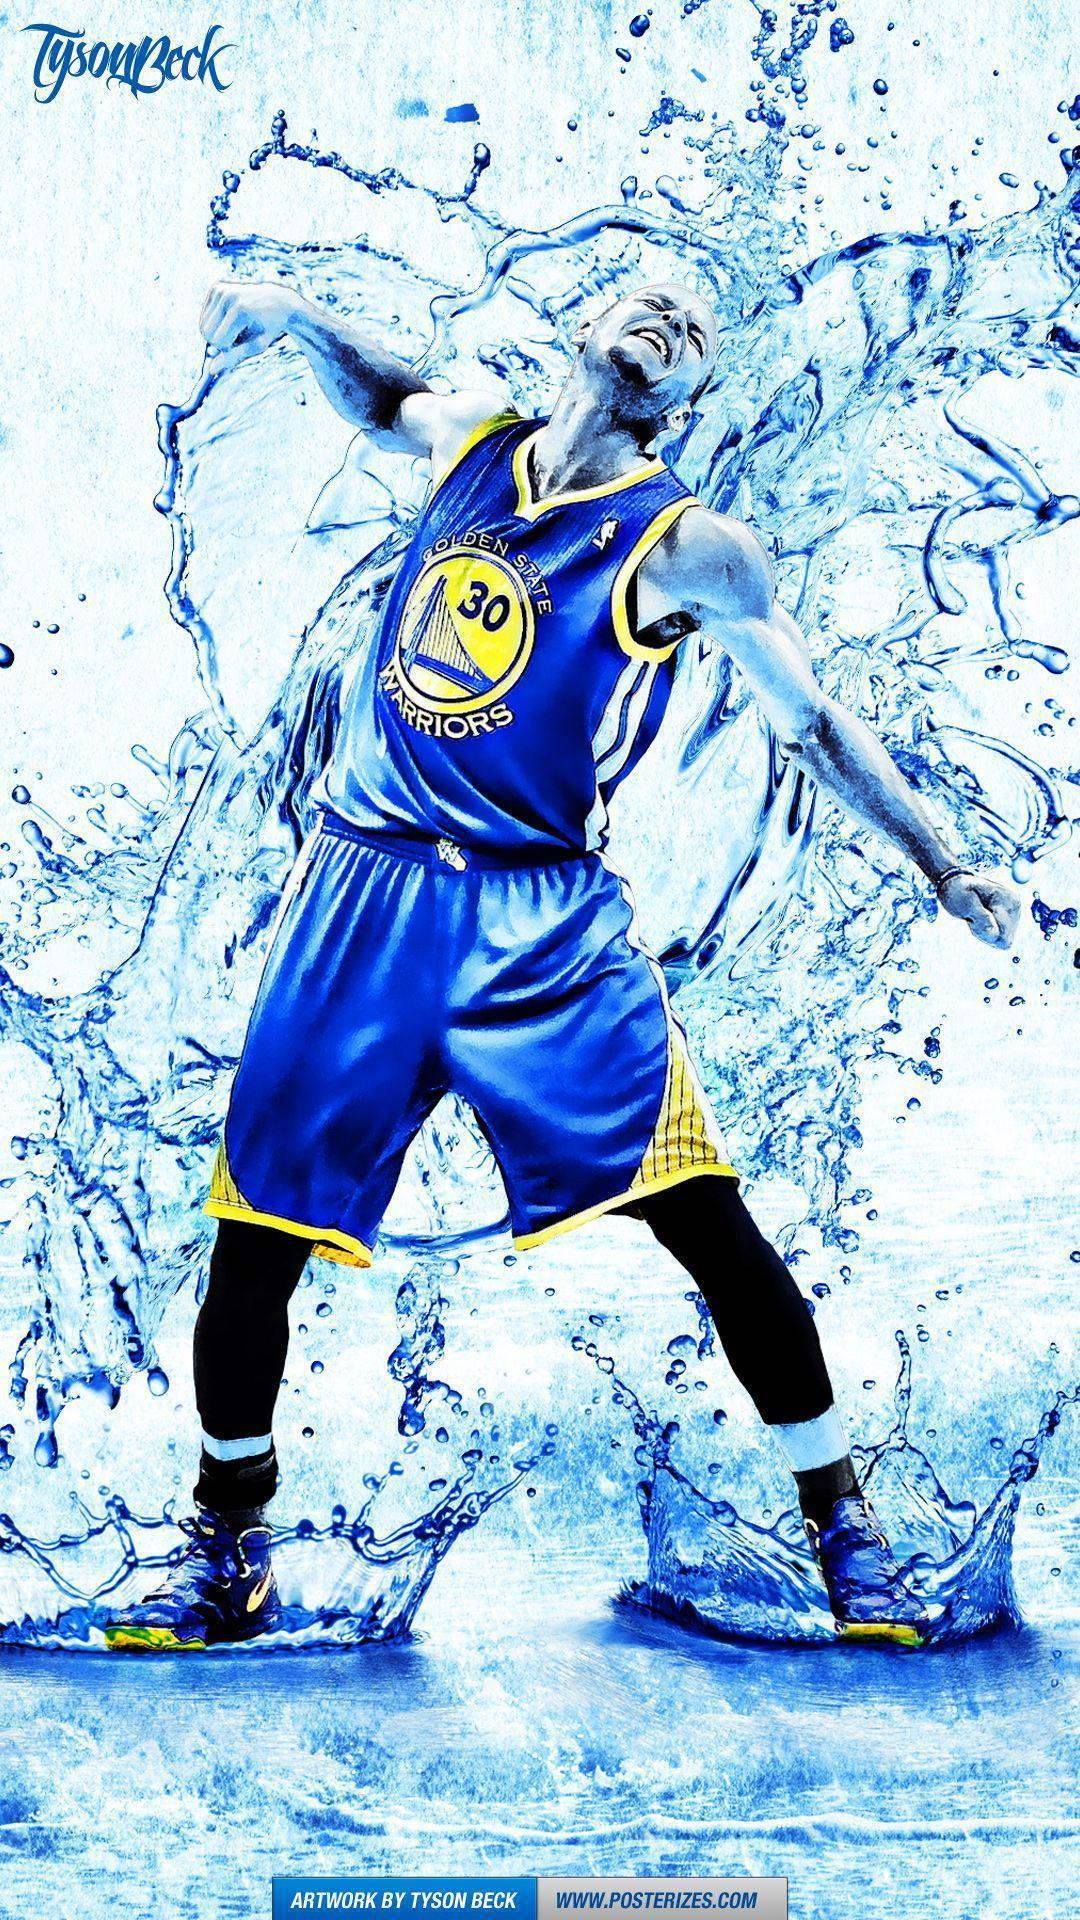 Stephen Curry \'Splash\' Wallpaper | Posterizes | NBA Wallpapers ...